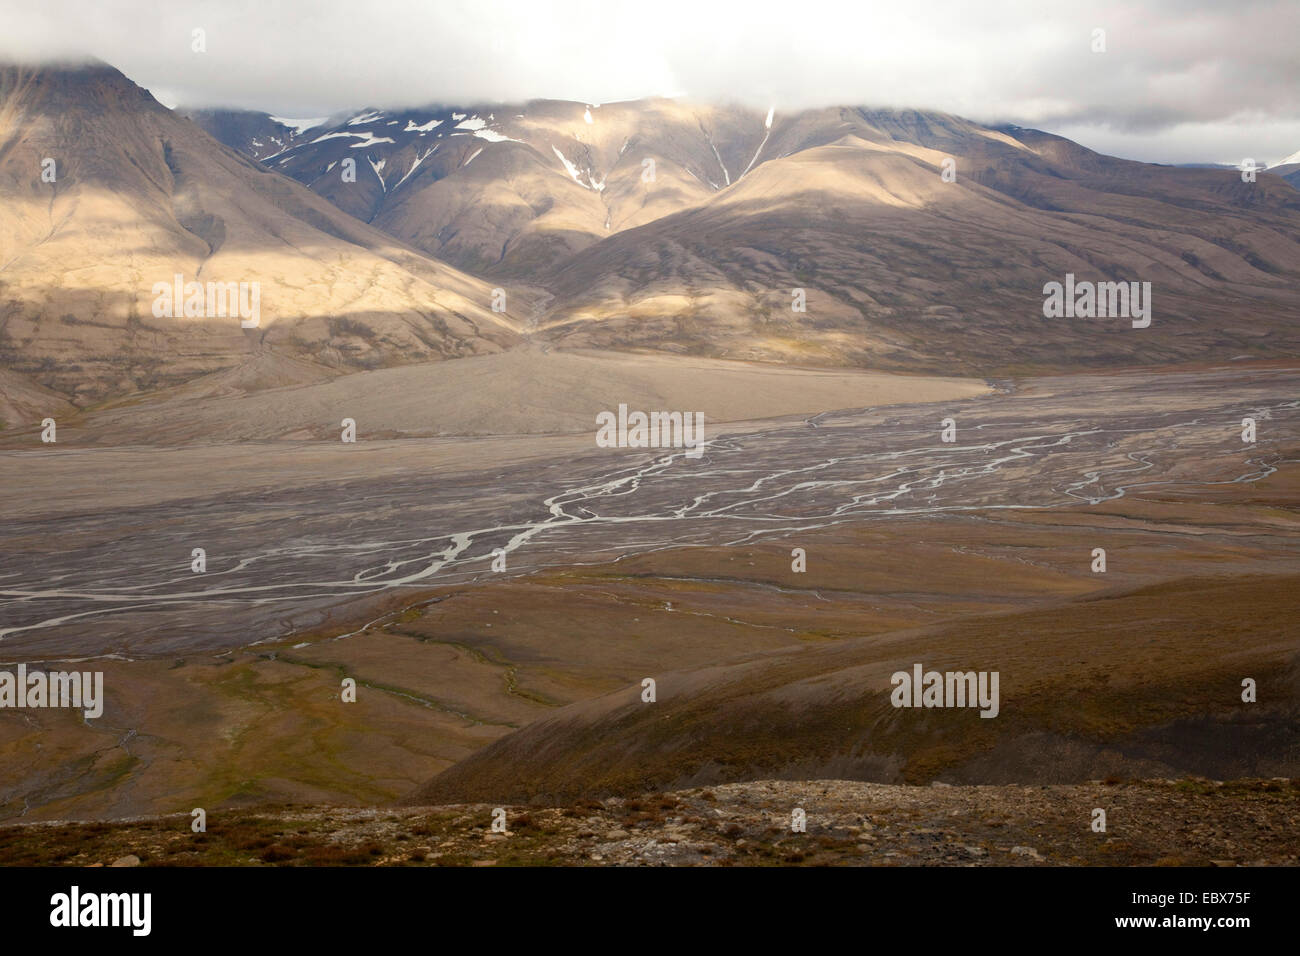 view over a wide valley with a river delta, Norway, Svalbard, Adventdalen, Longyaerbyen - Stock Image